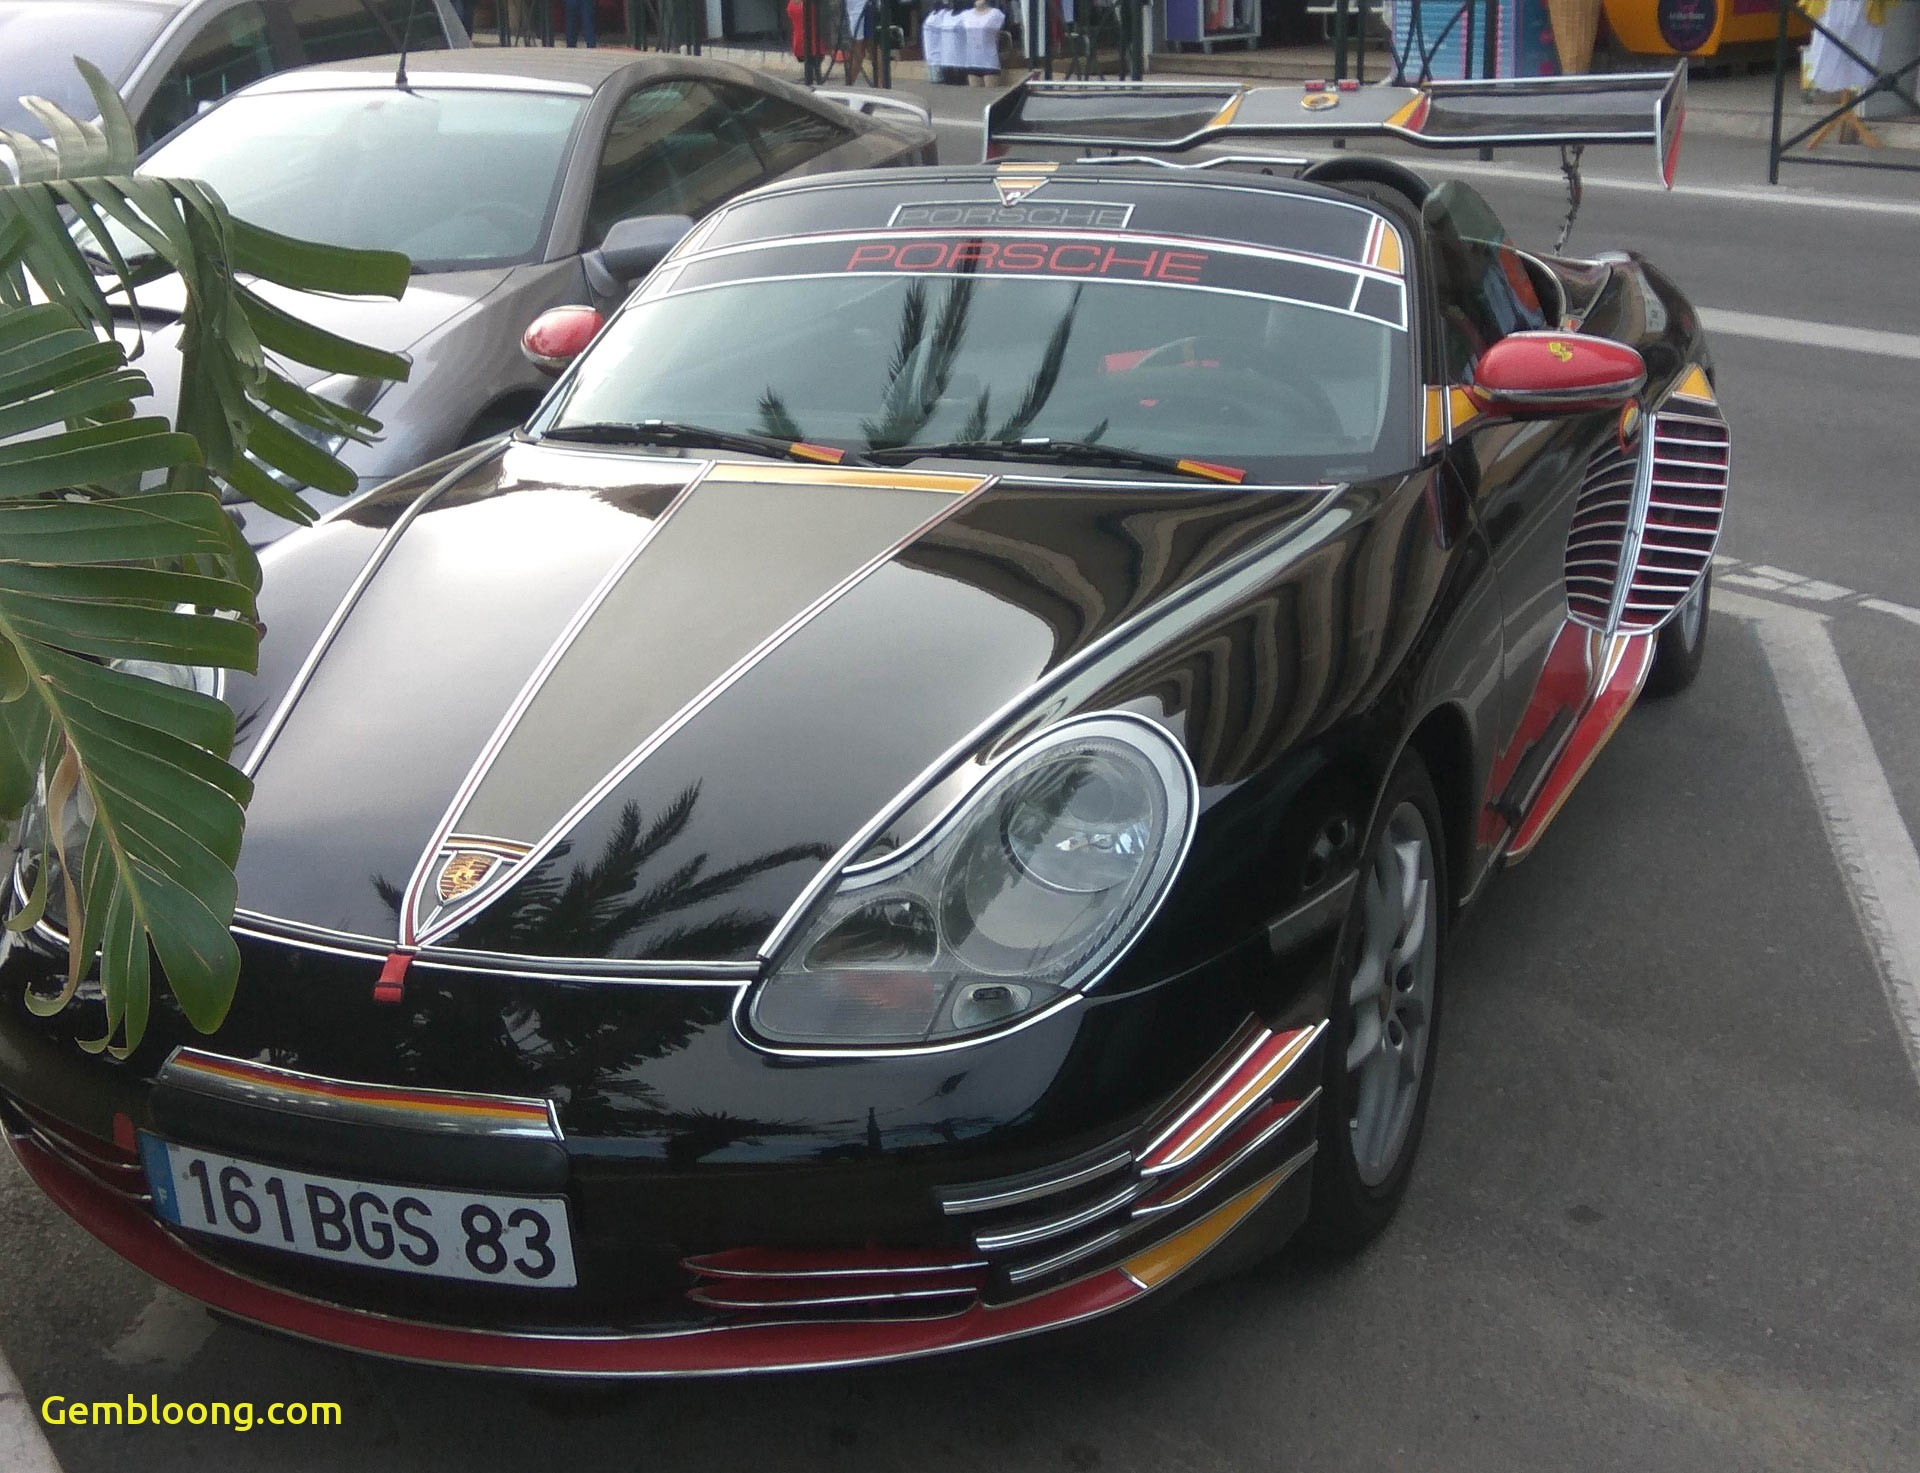 Porsche Boxster Price Best Of Congratulations Your Modded Porsche Boxster is now A